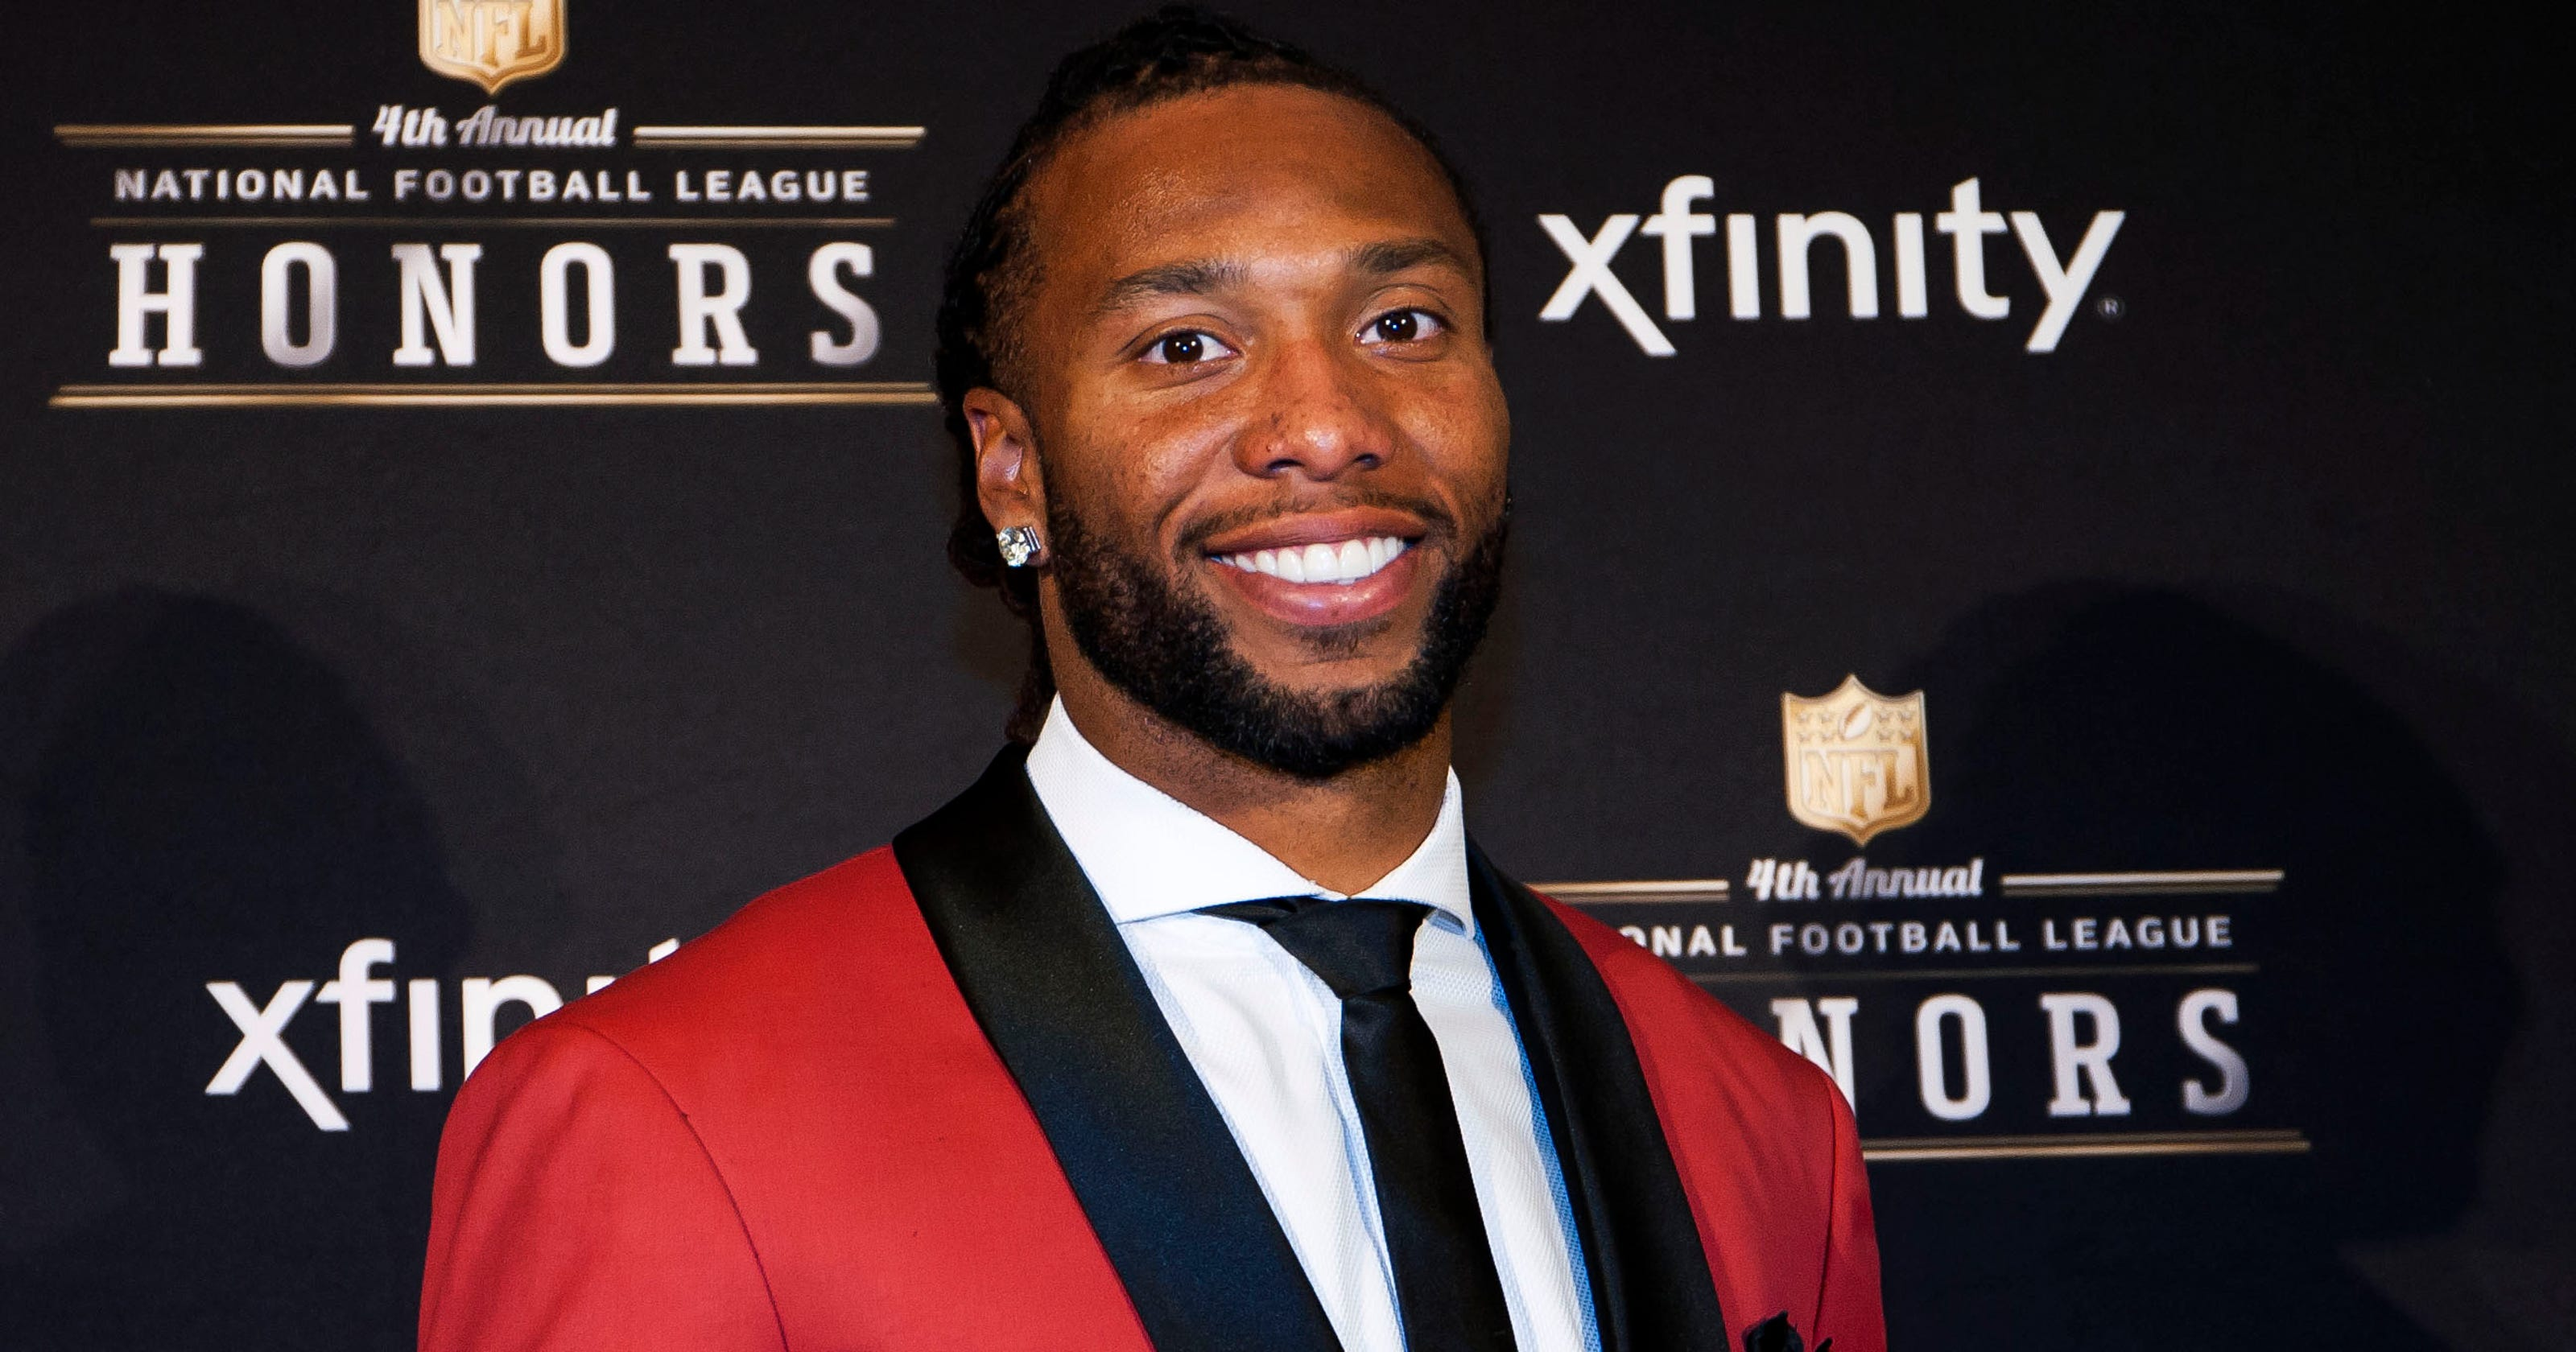 b27204489 Cardinals, Larry Fitzgerald agree to new contract